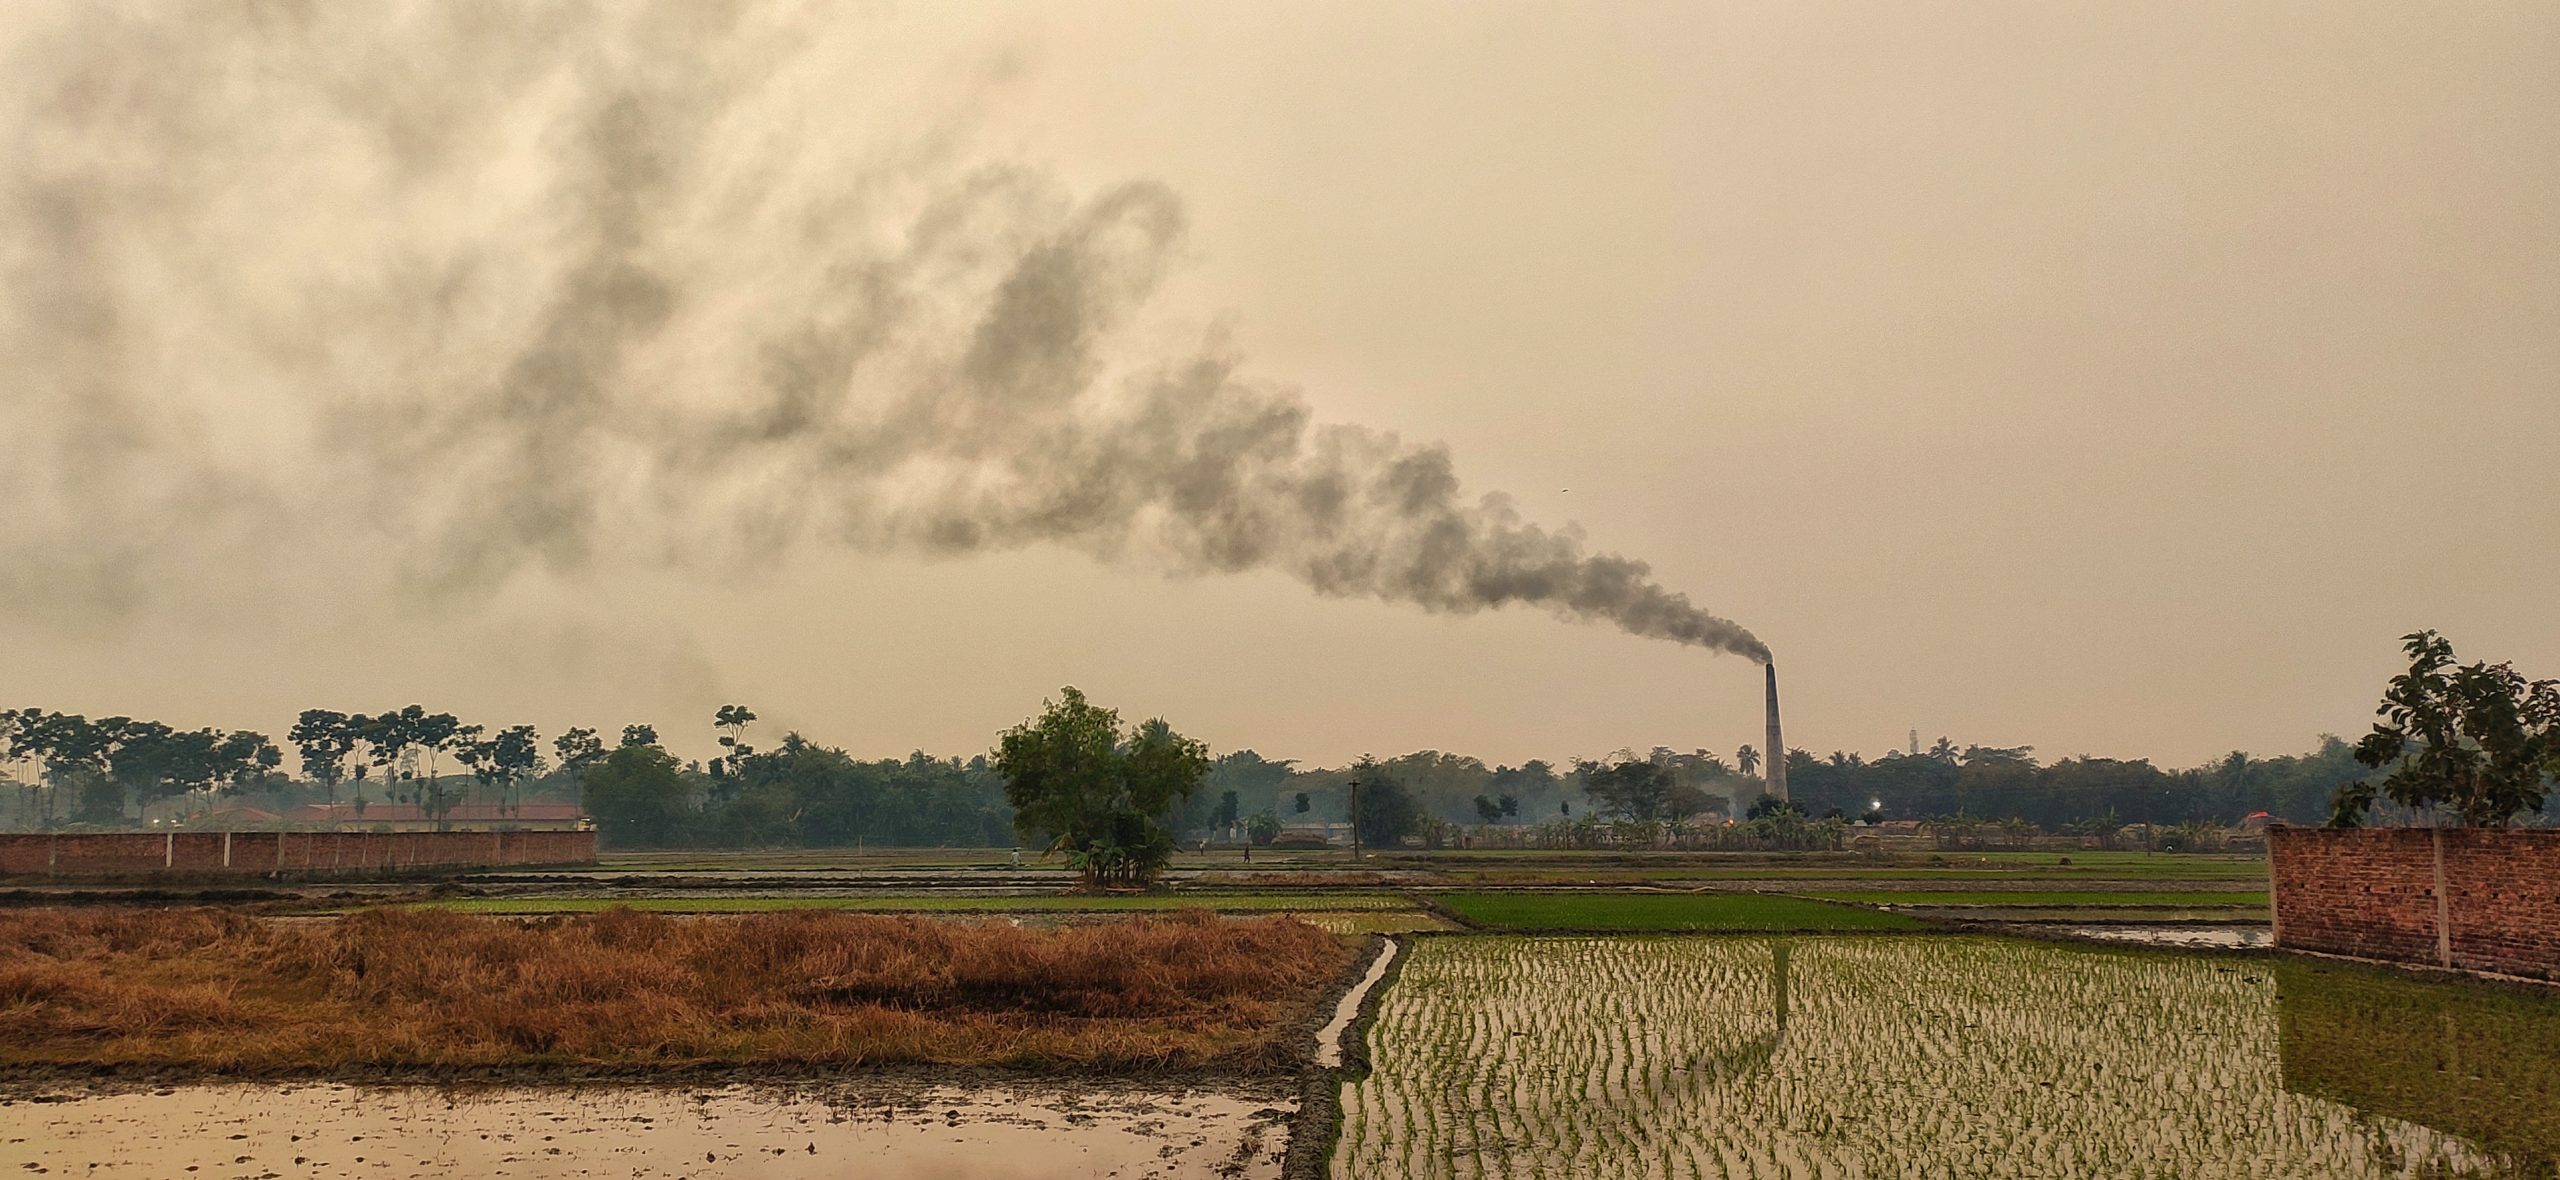 Smoke pollution near agriculture land